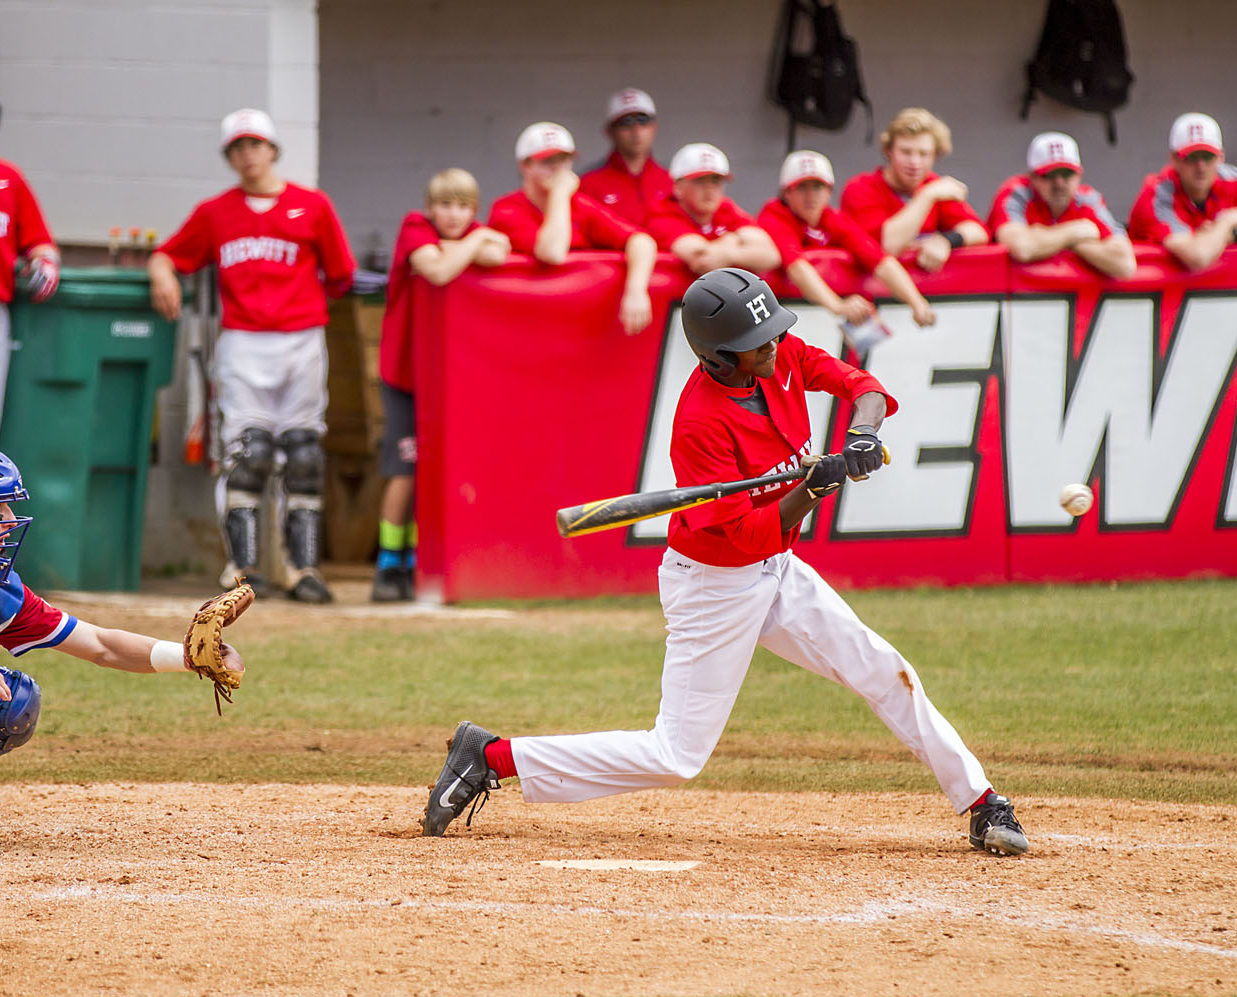 Defnall's pinch hit lifts Hewitt-Trussville over Moody